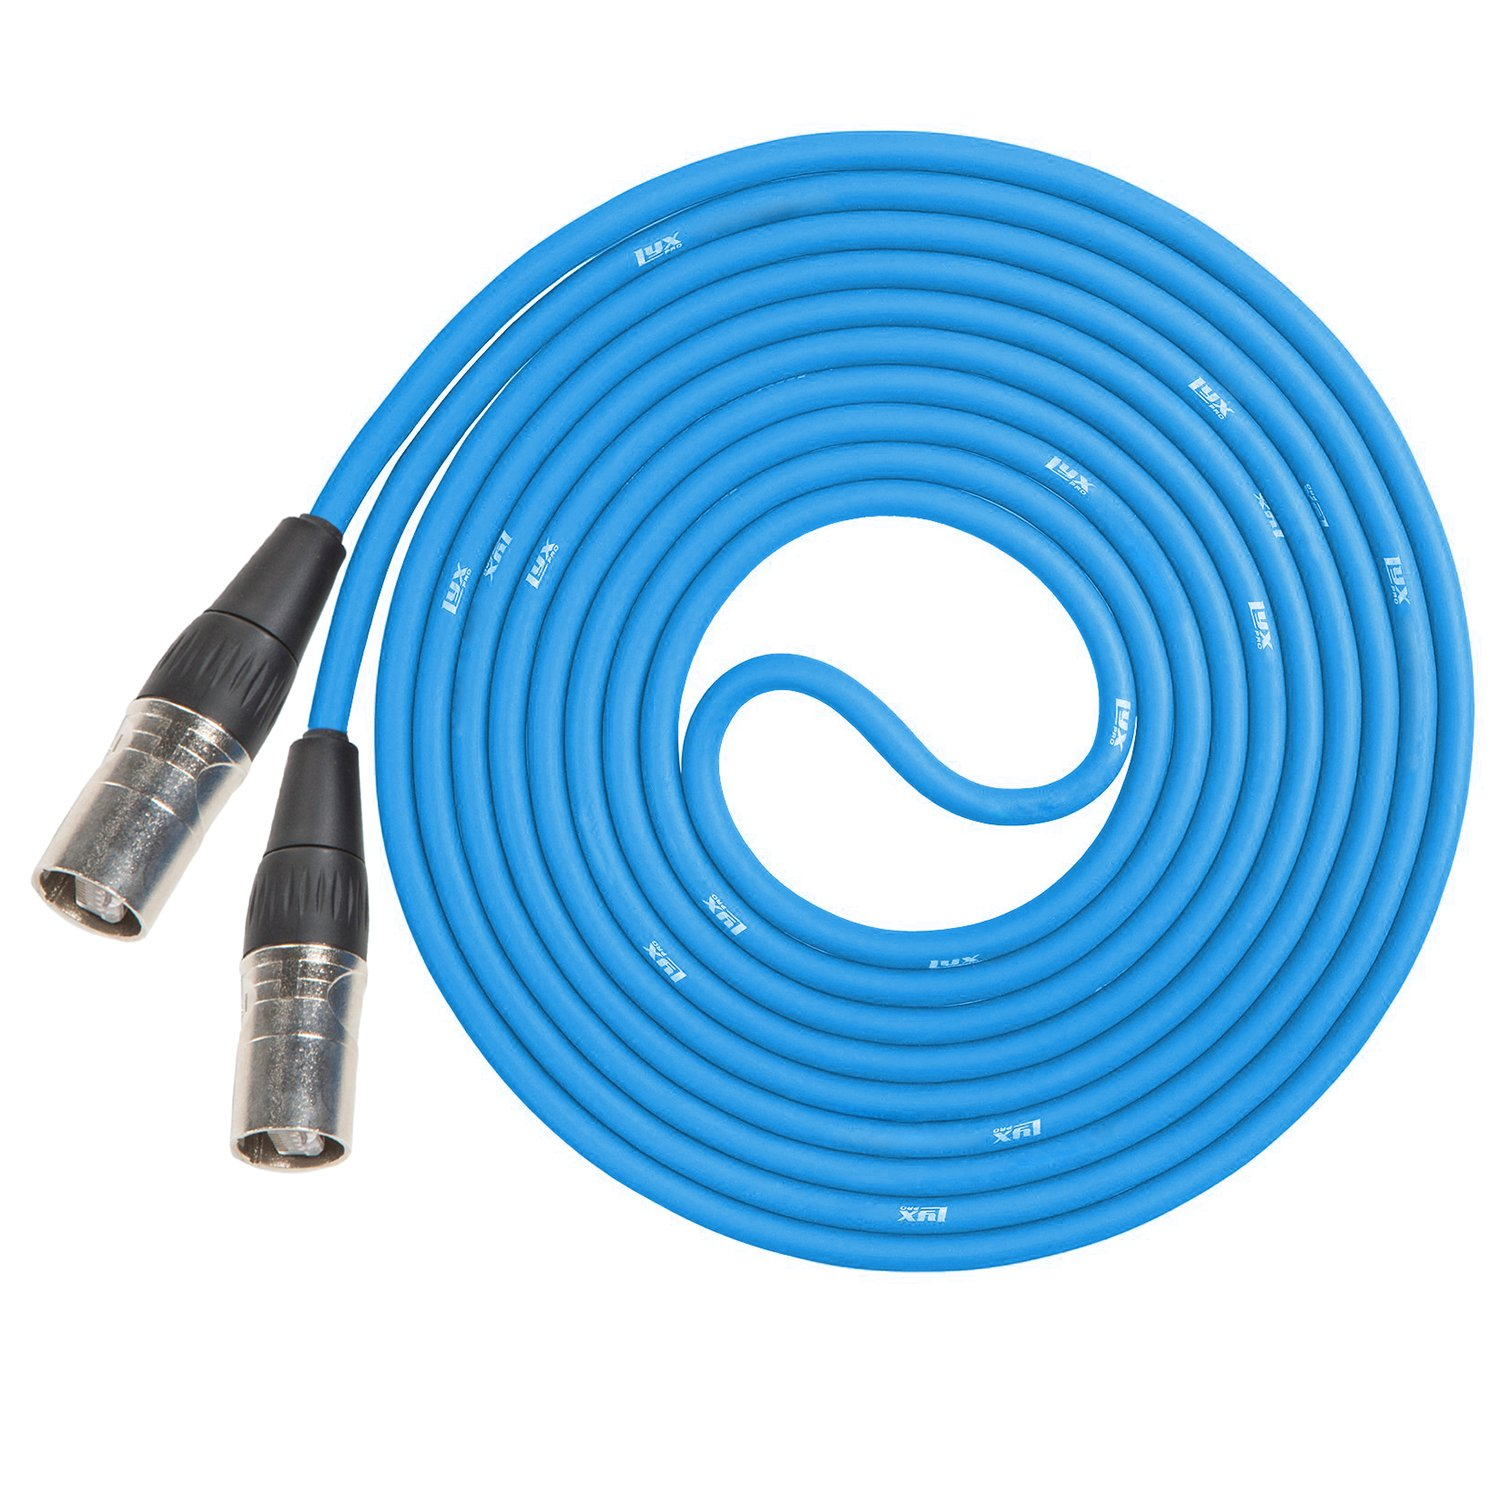 LyxPro CAT6 Shielded Ethercon RJ45 Cable - 30' Feet Blue